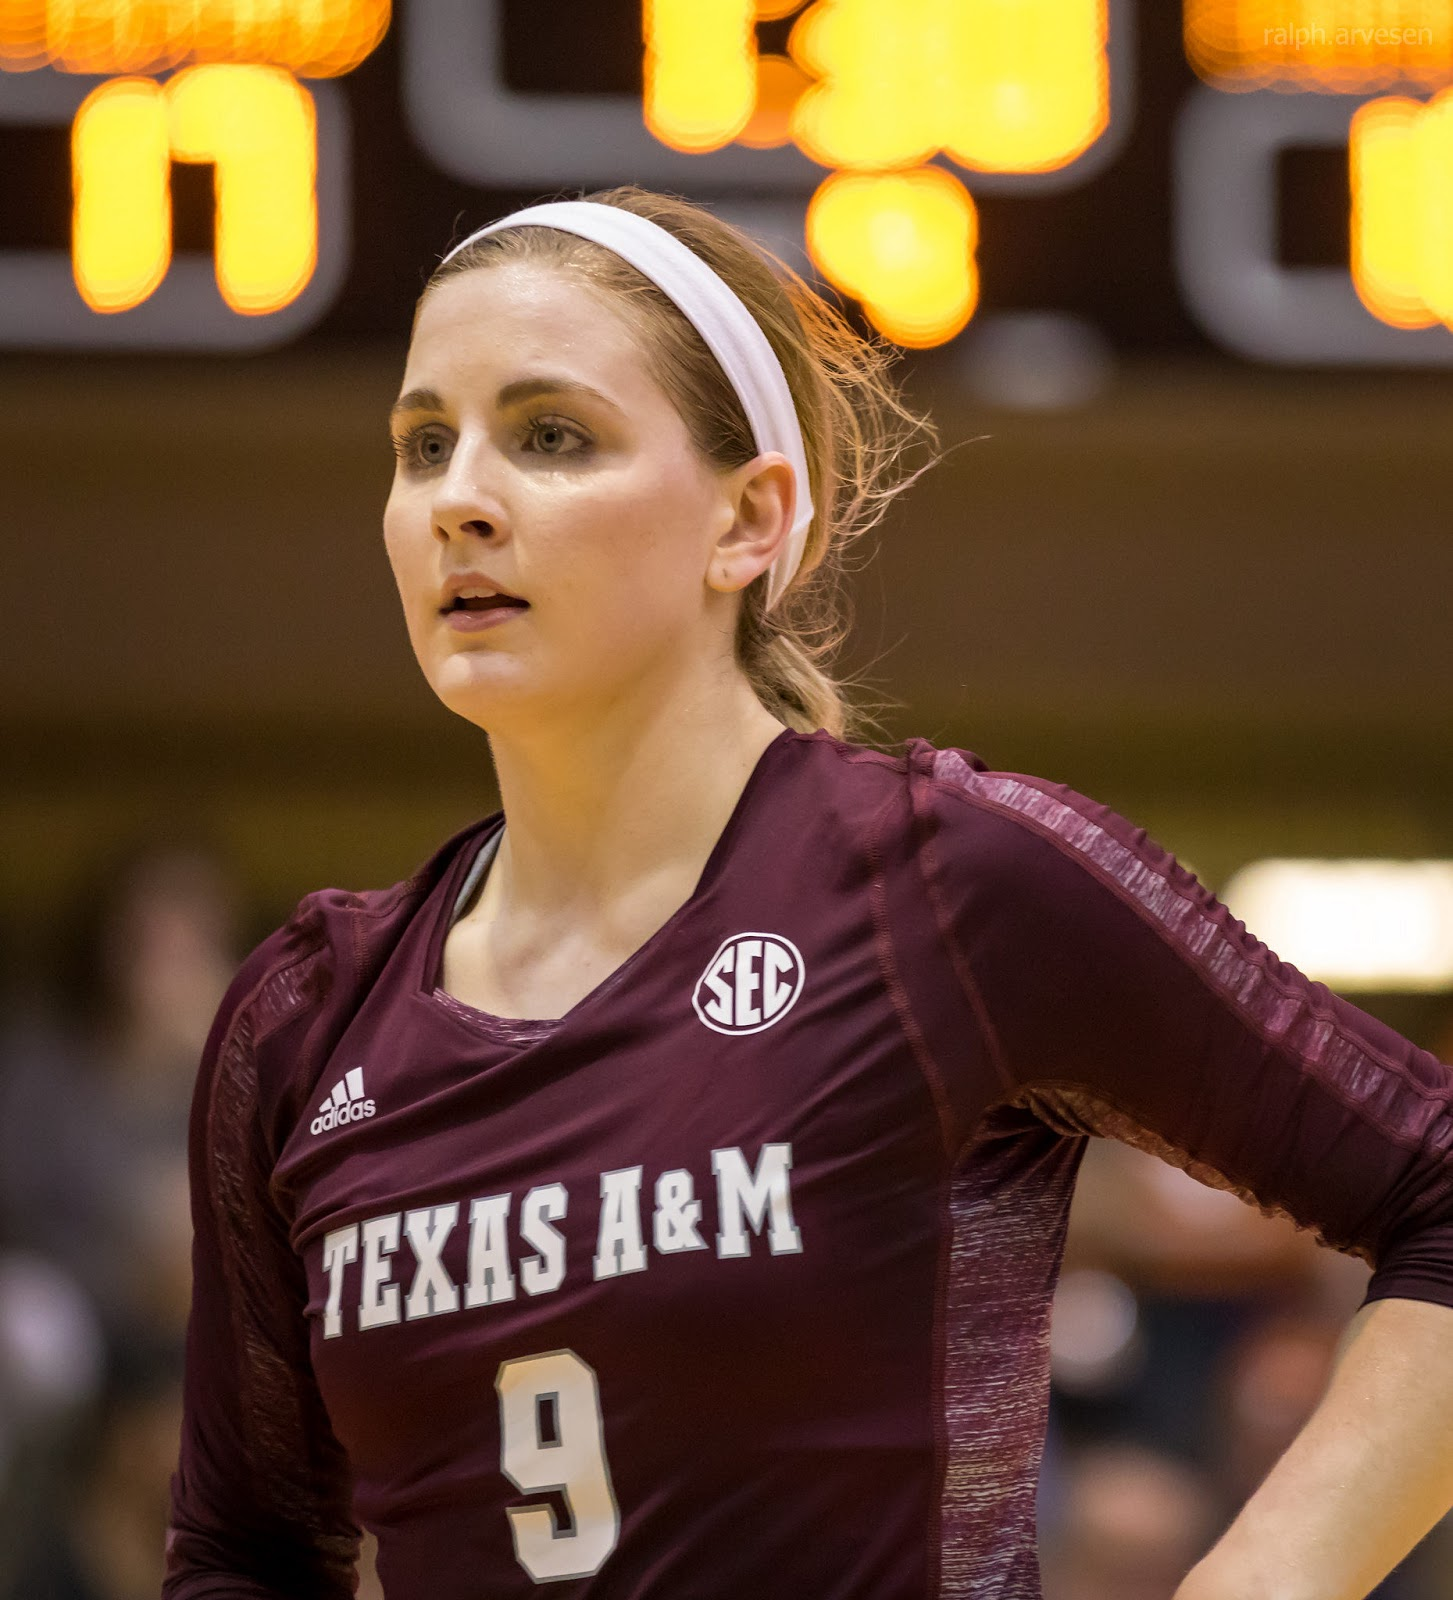 Texas A&M Aggies Volleyball